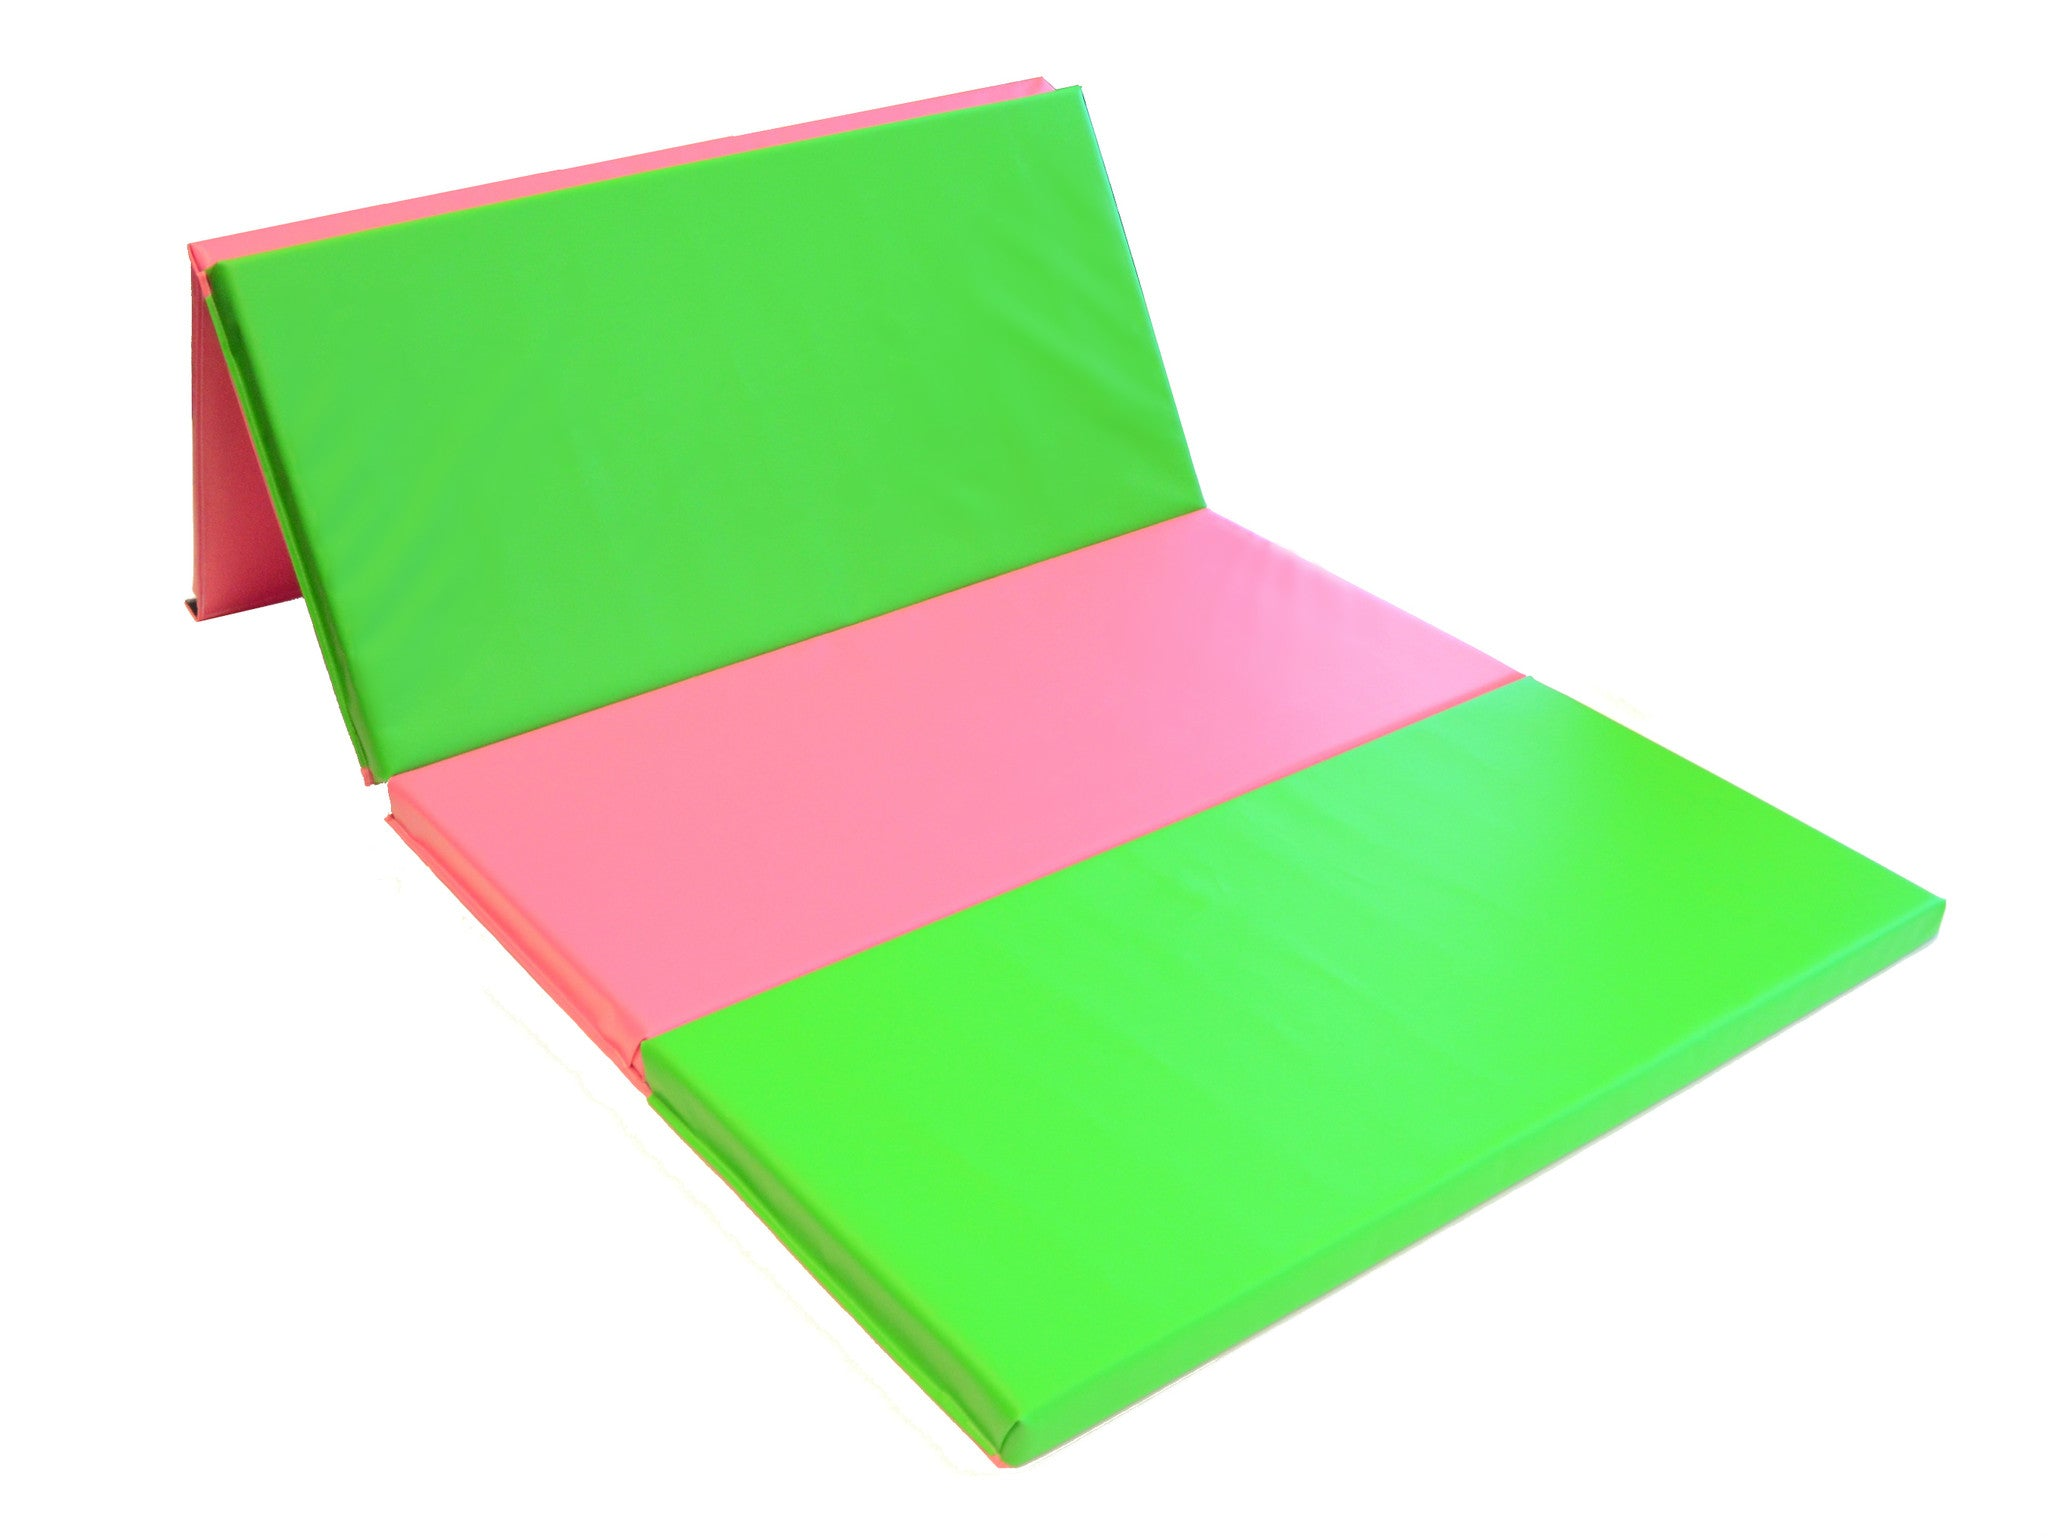 Folding 4 X 8 X 2 Quot Gymnastics Mat Intermediate Level